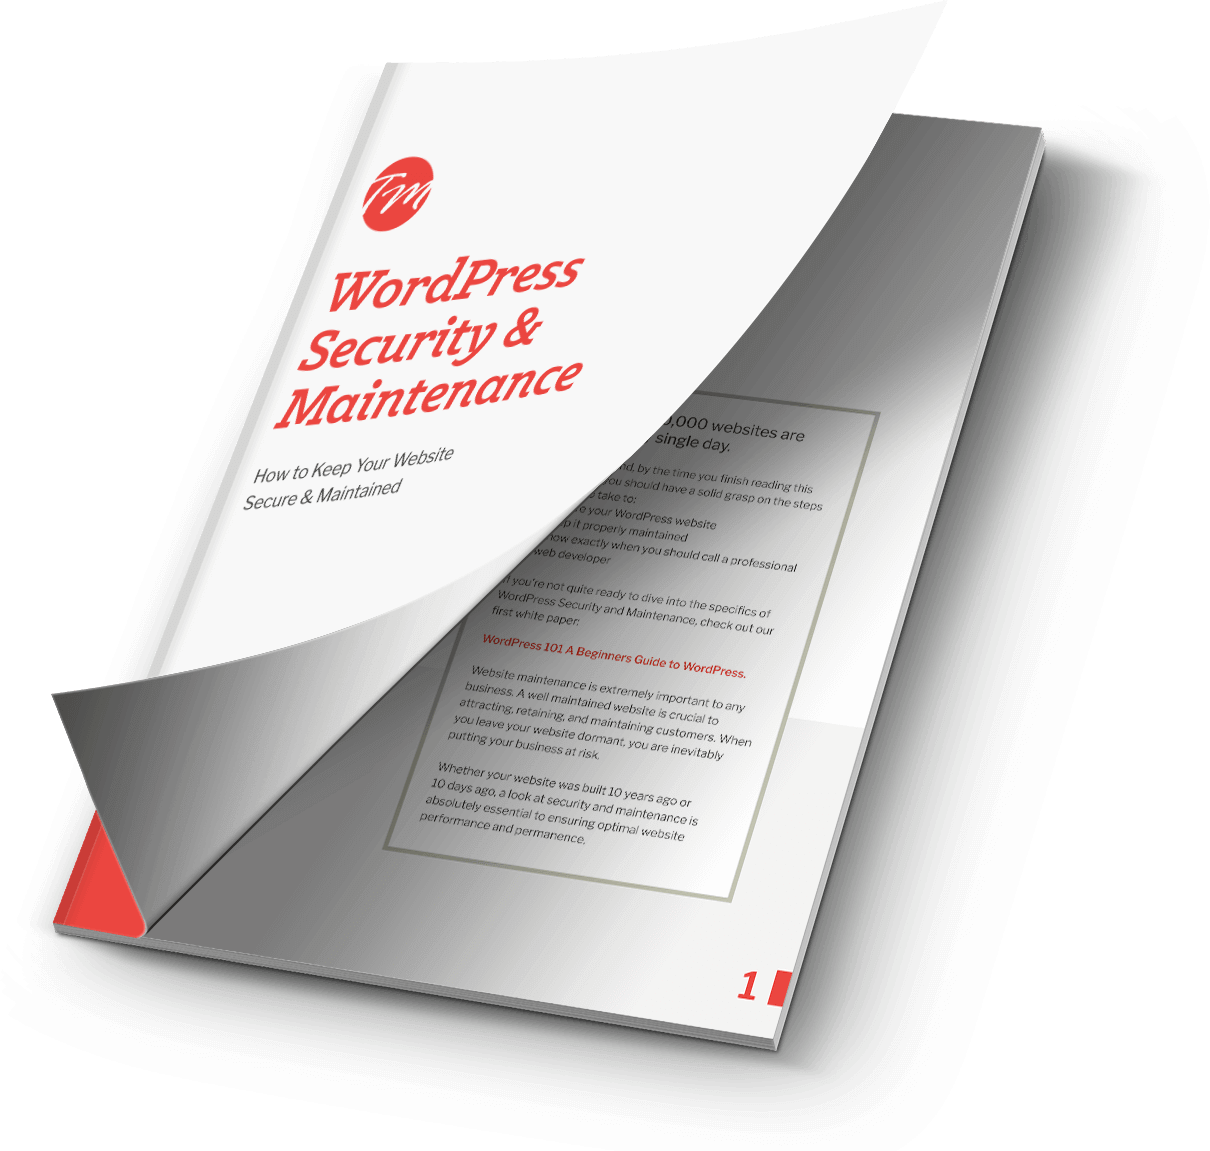 WordPress Security & Maintenance PDF Resource